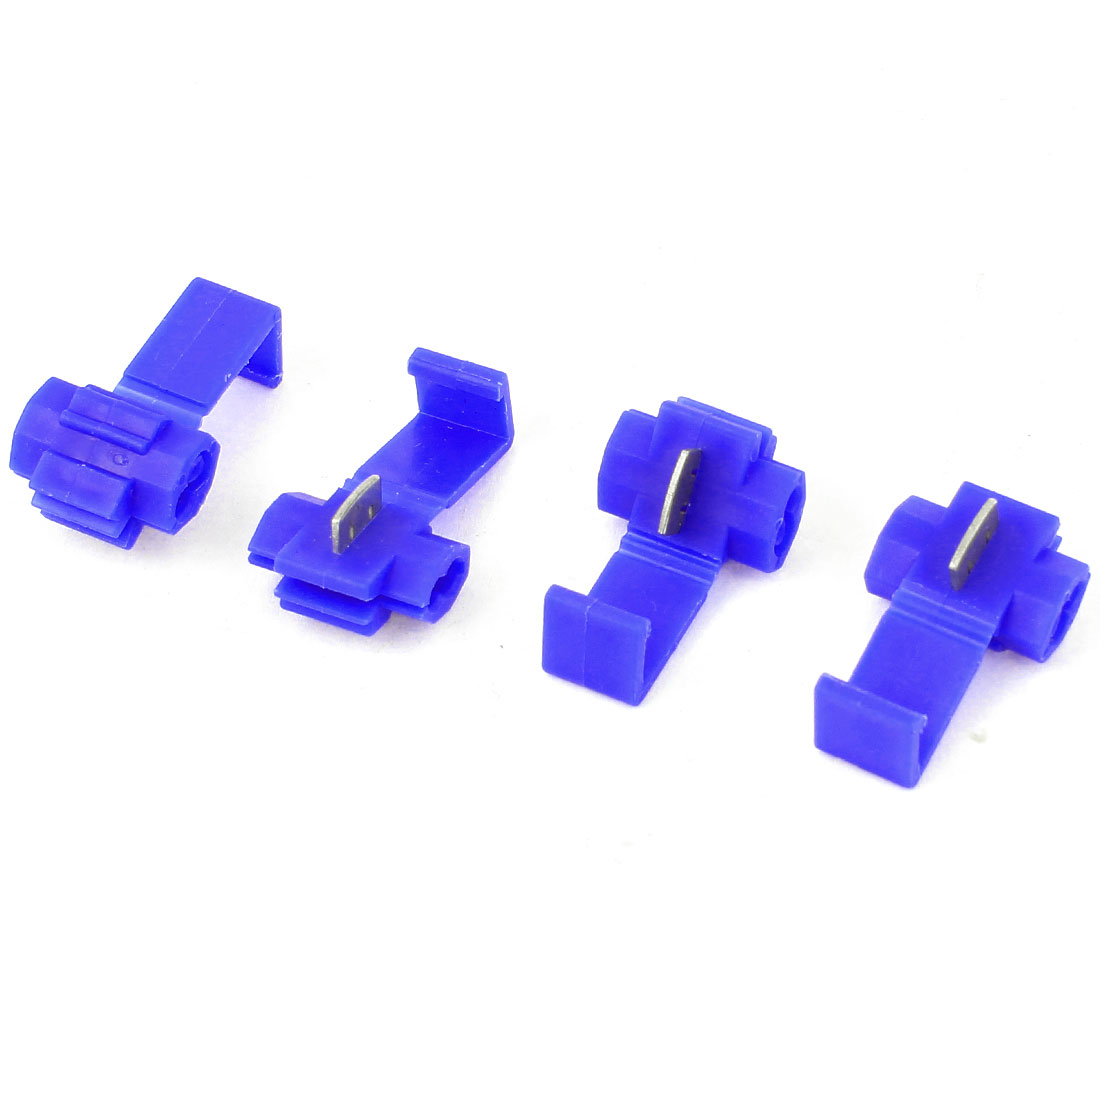 4 Pcs Blue Plastic 18-14 AWG Door Cable Wire Clip Clamp for Cars Auto